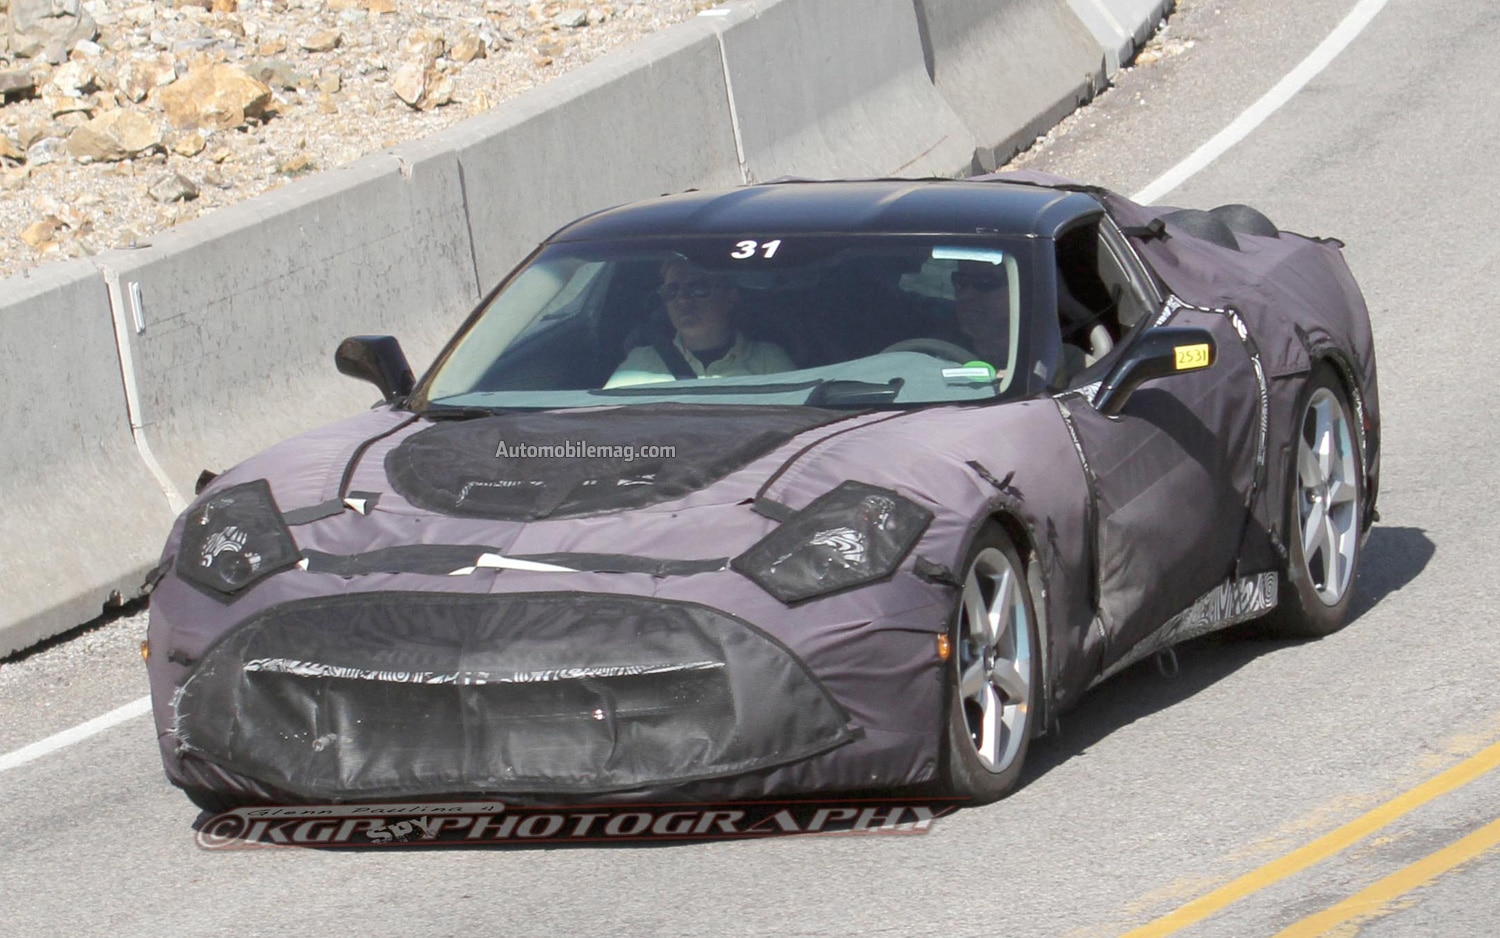 2014 Chevrolet Corvette C7 Spy Photo Front Three Quarter Motion 311